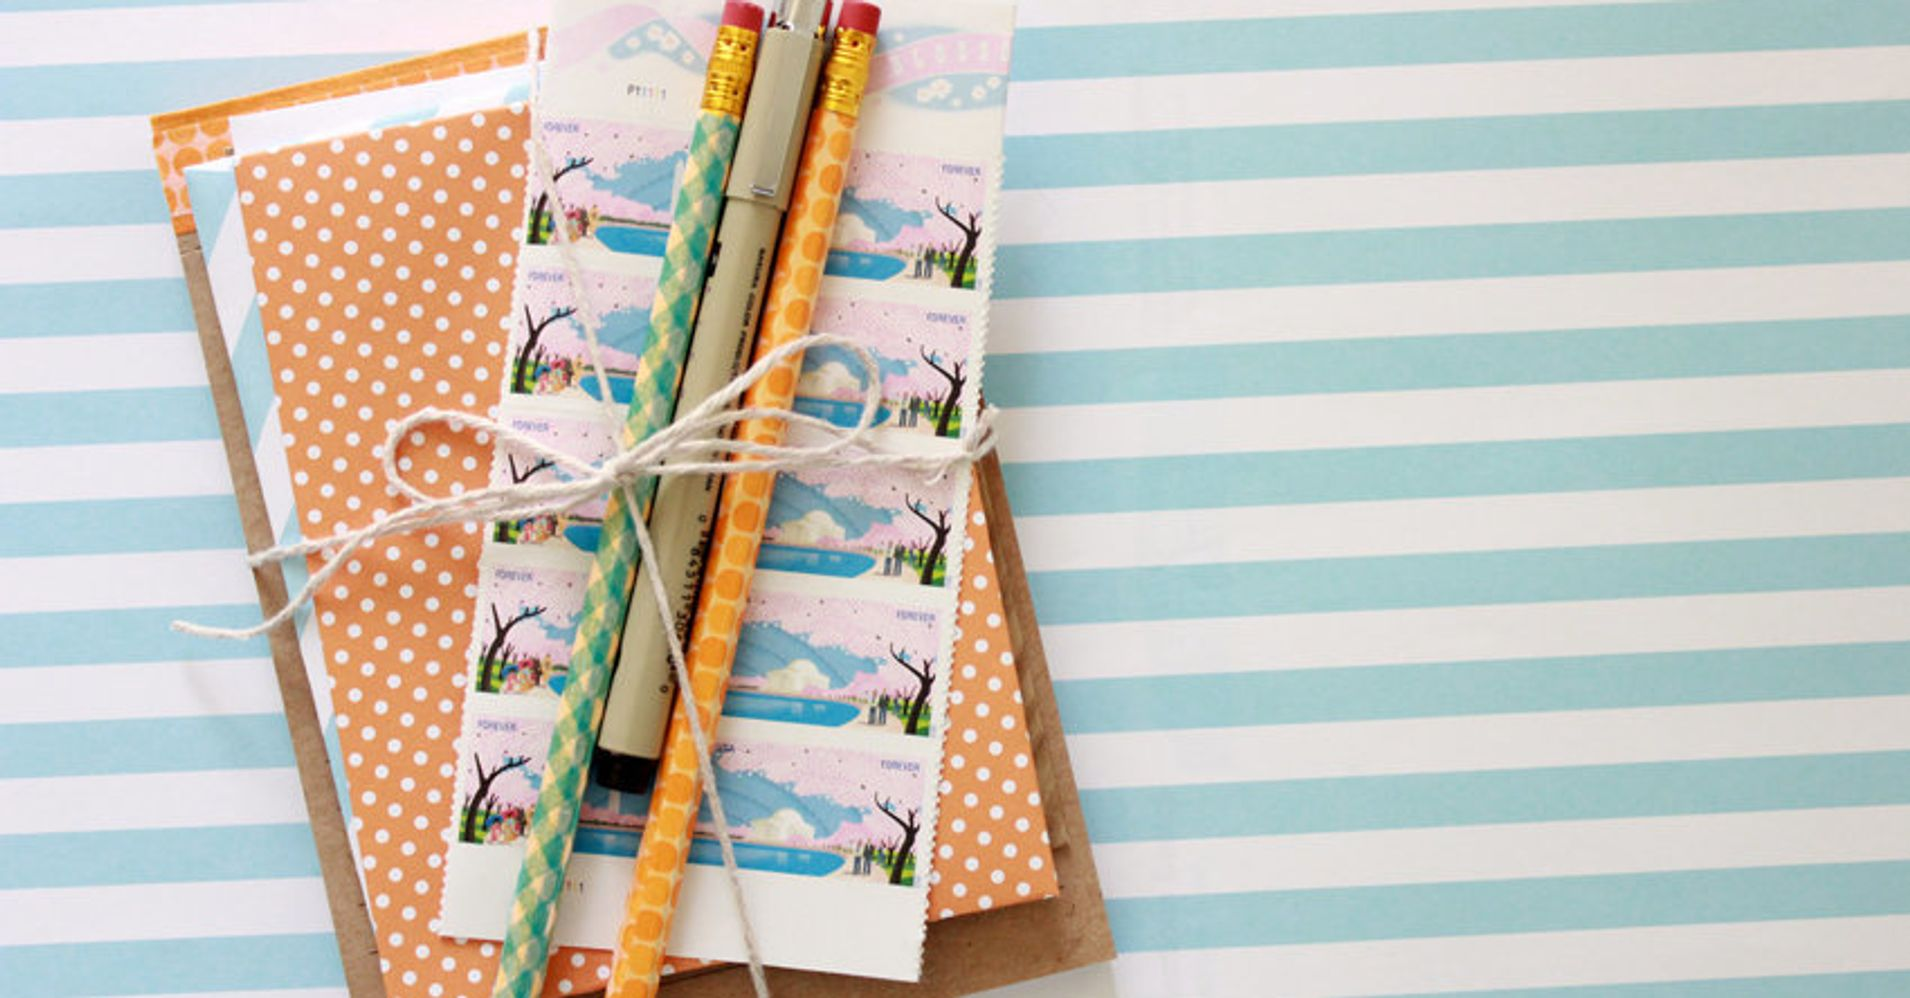 Diy gift ideas huffpost delia creates 15 simple diy gifts negle Images